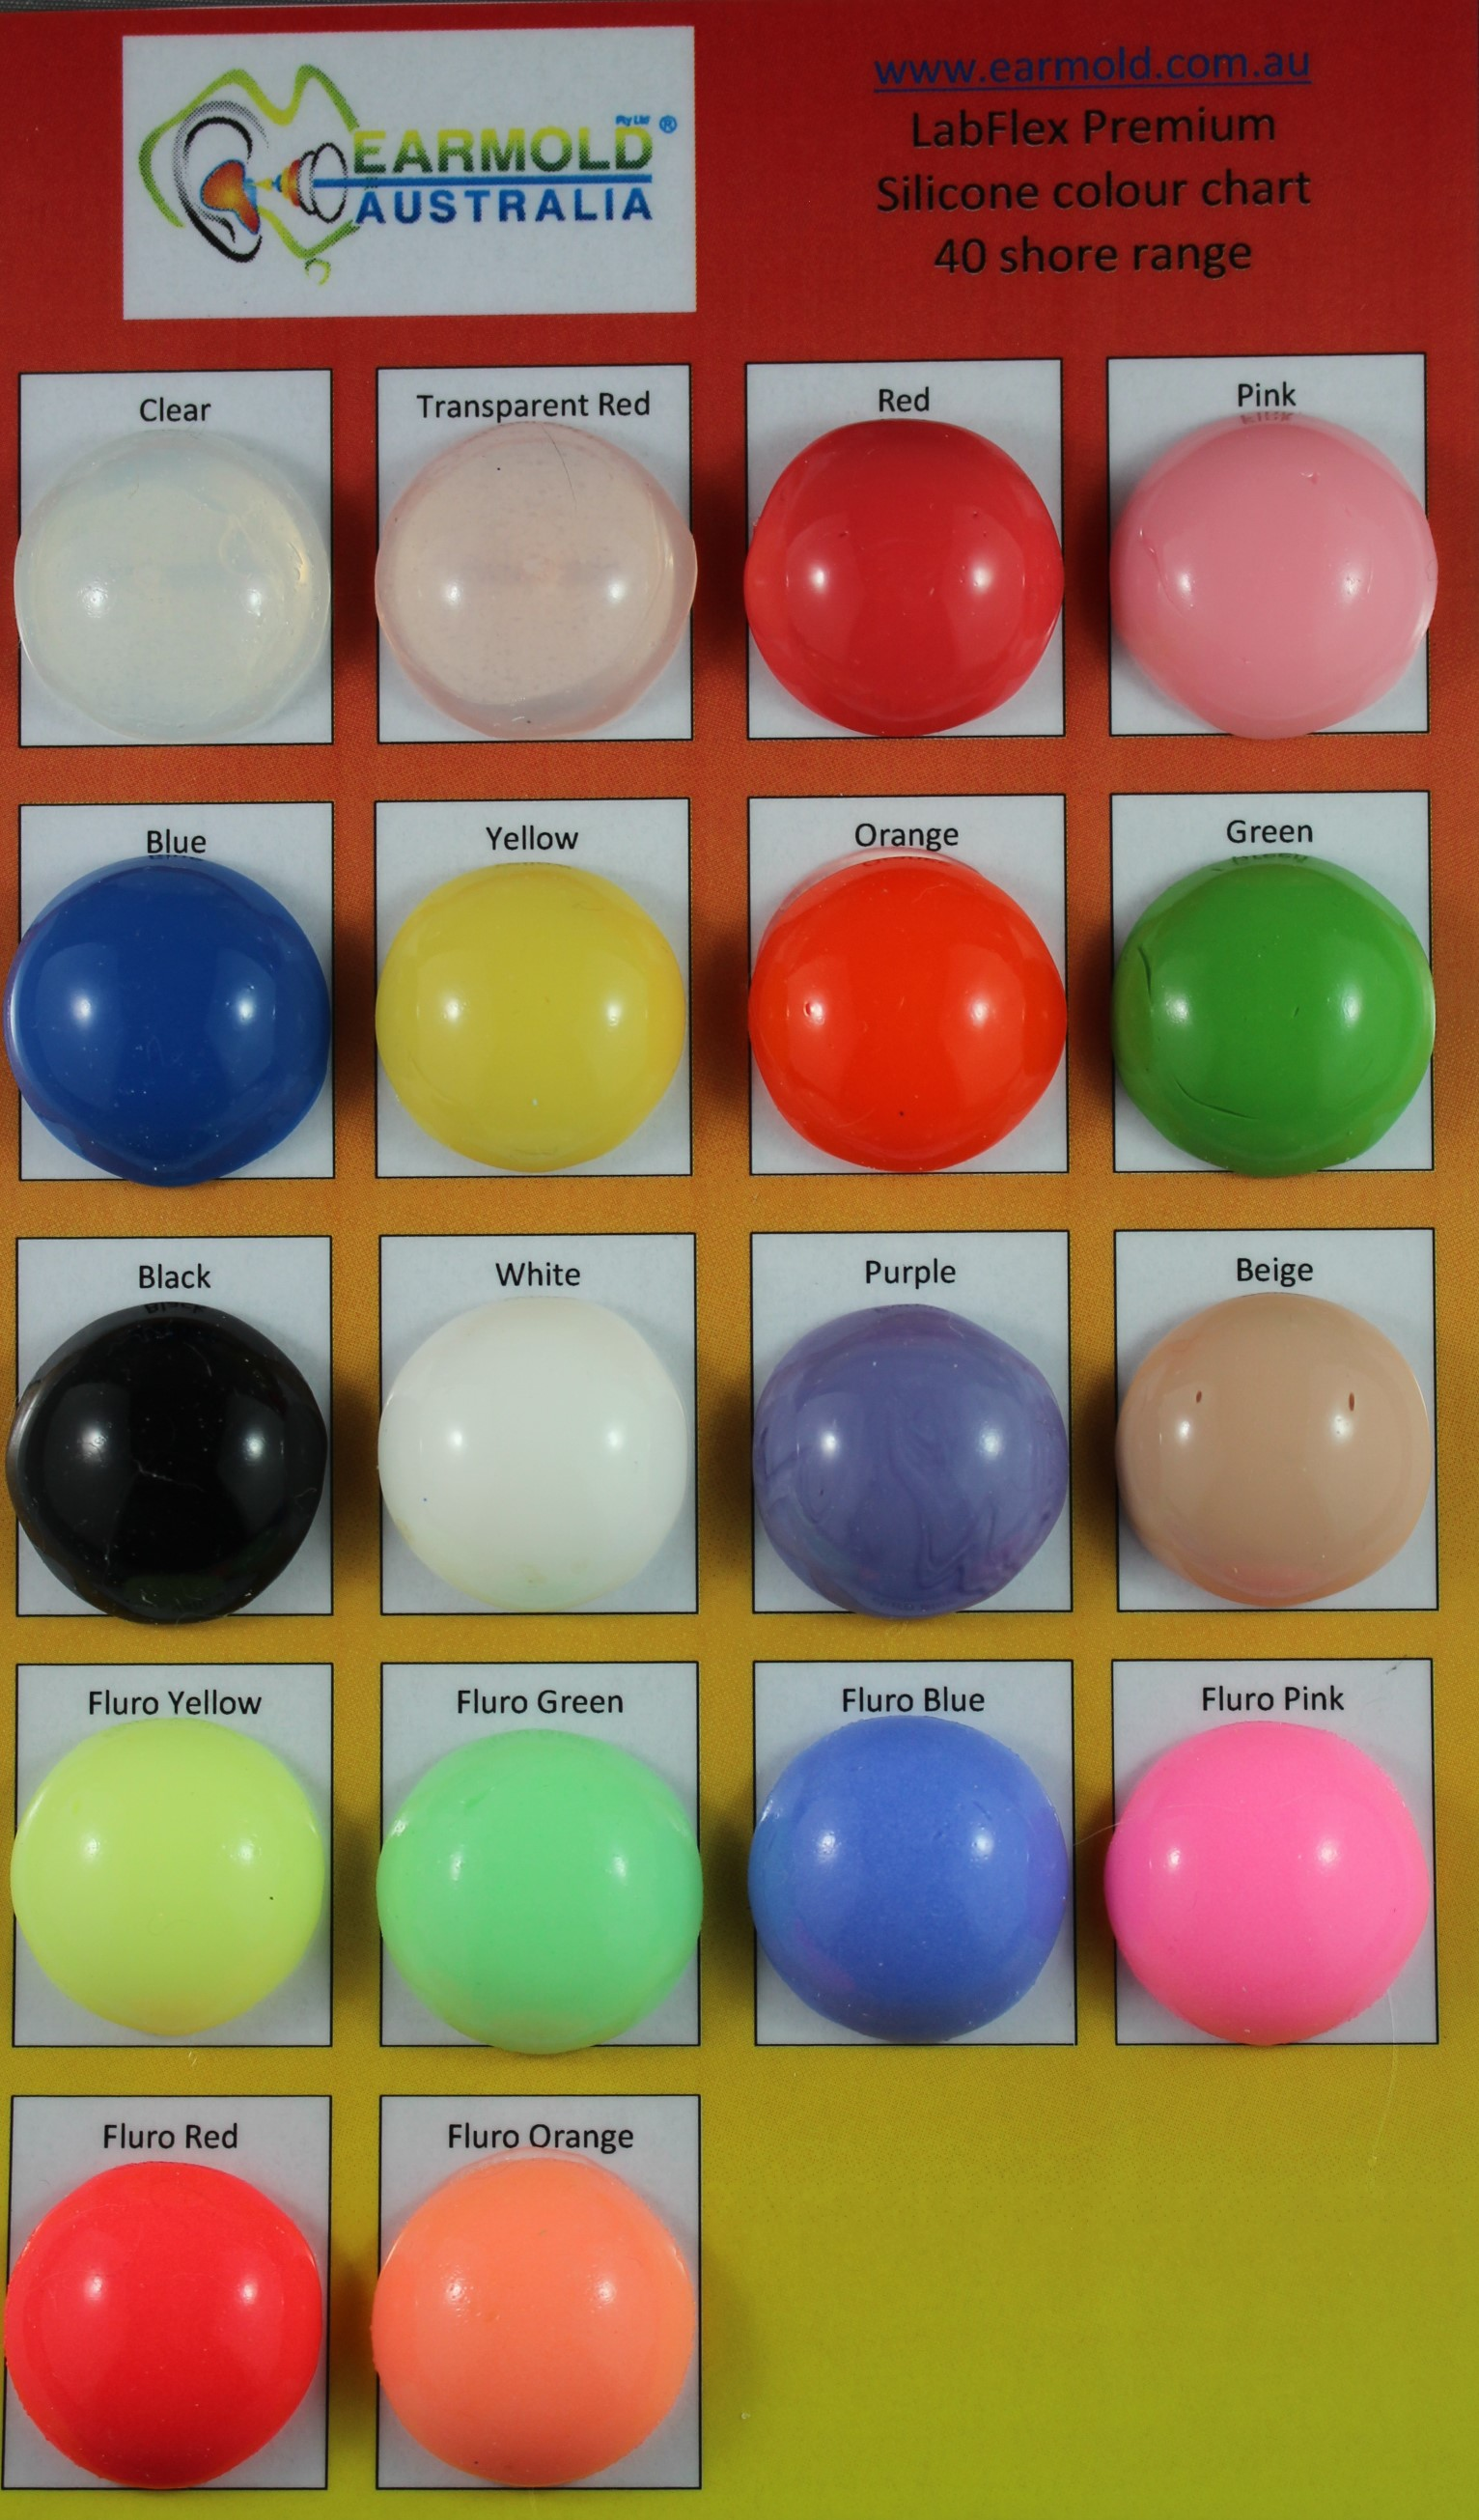 LabFlex 40 Shore colour chart